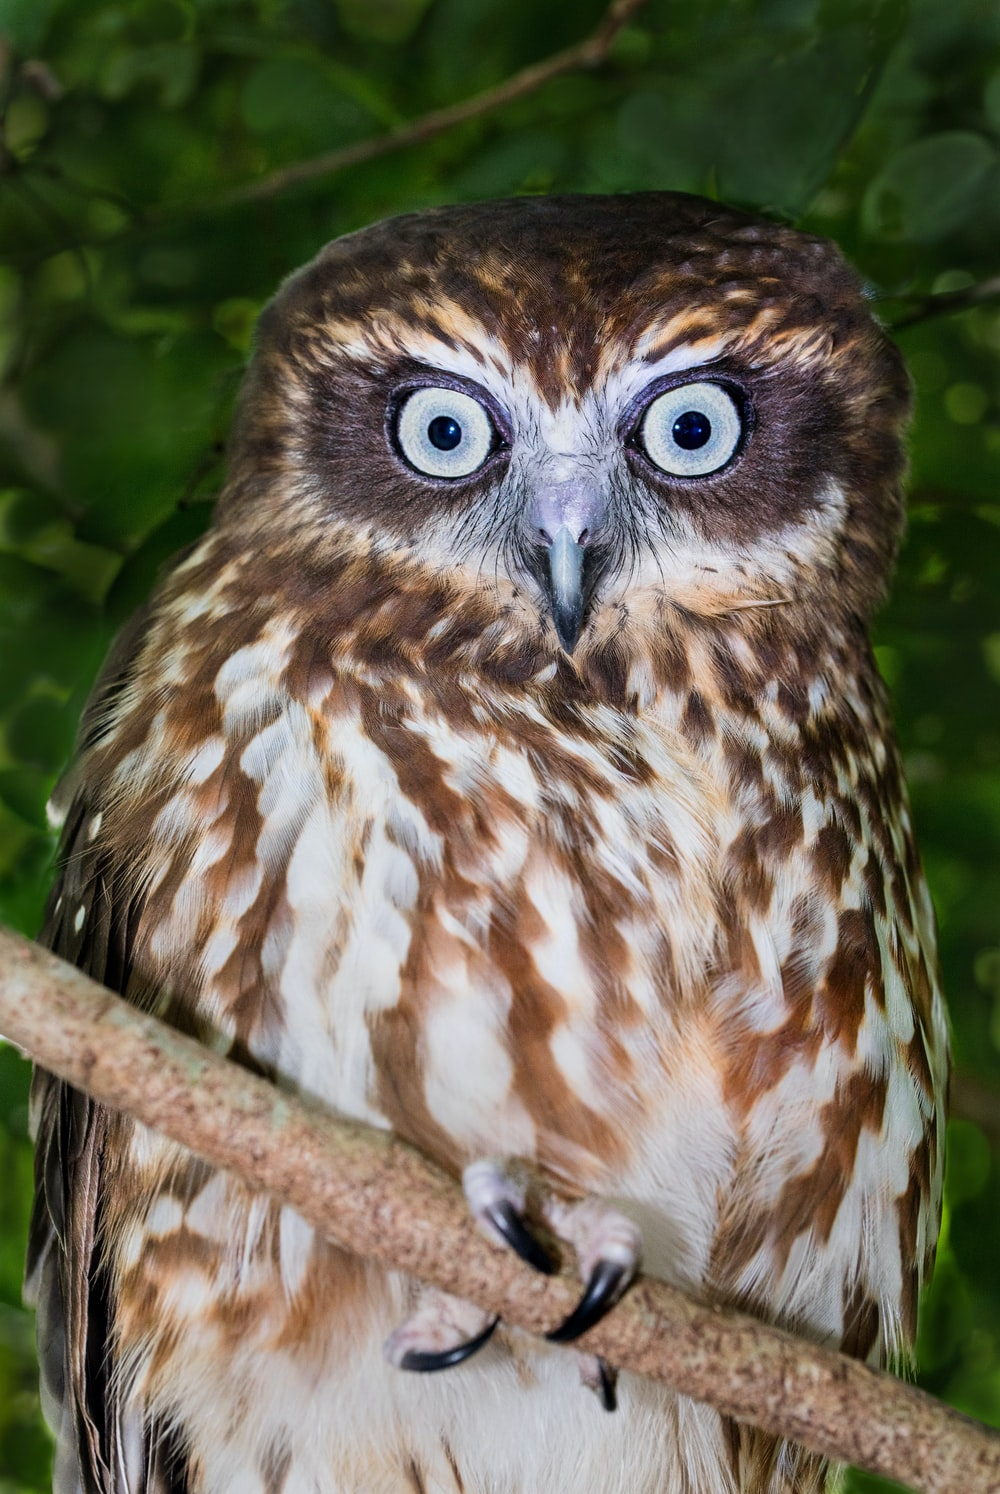 brown owl on tree in close-up photo